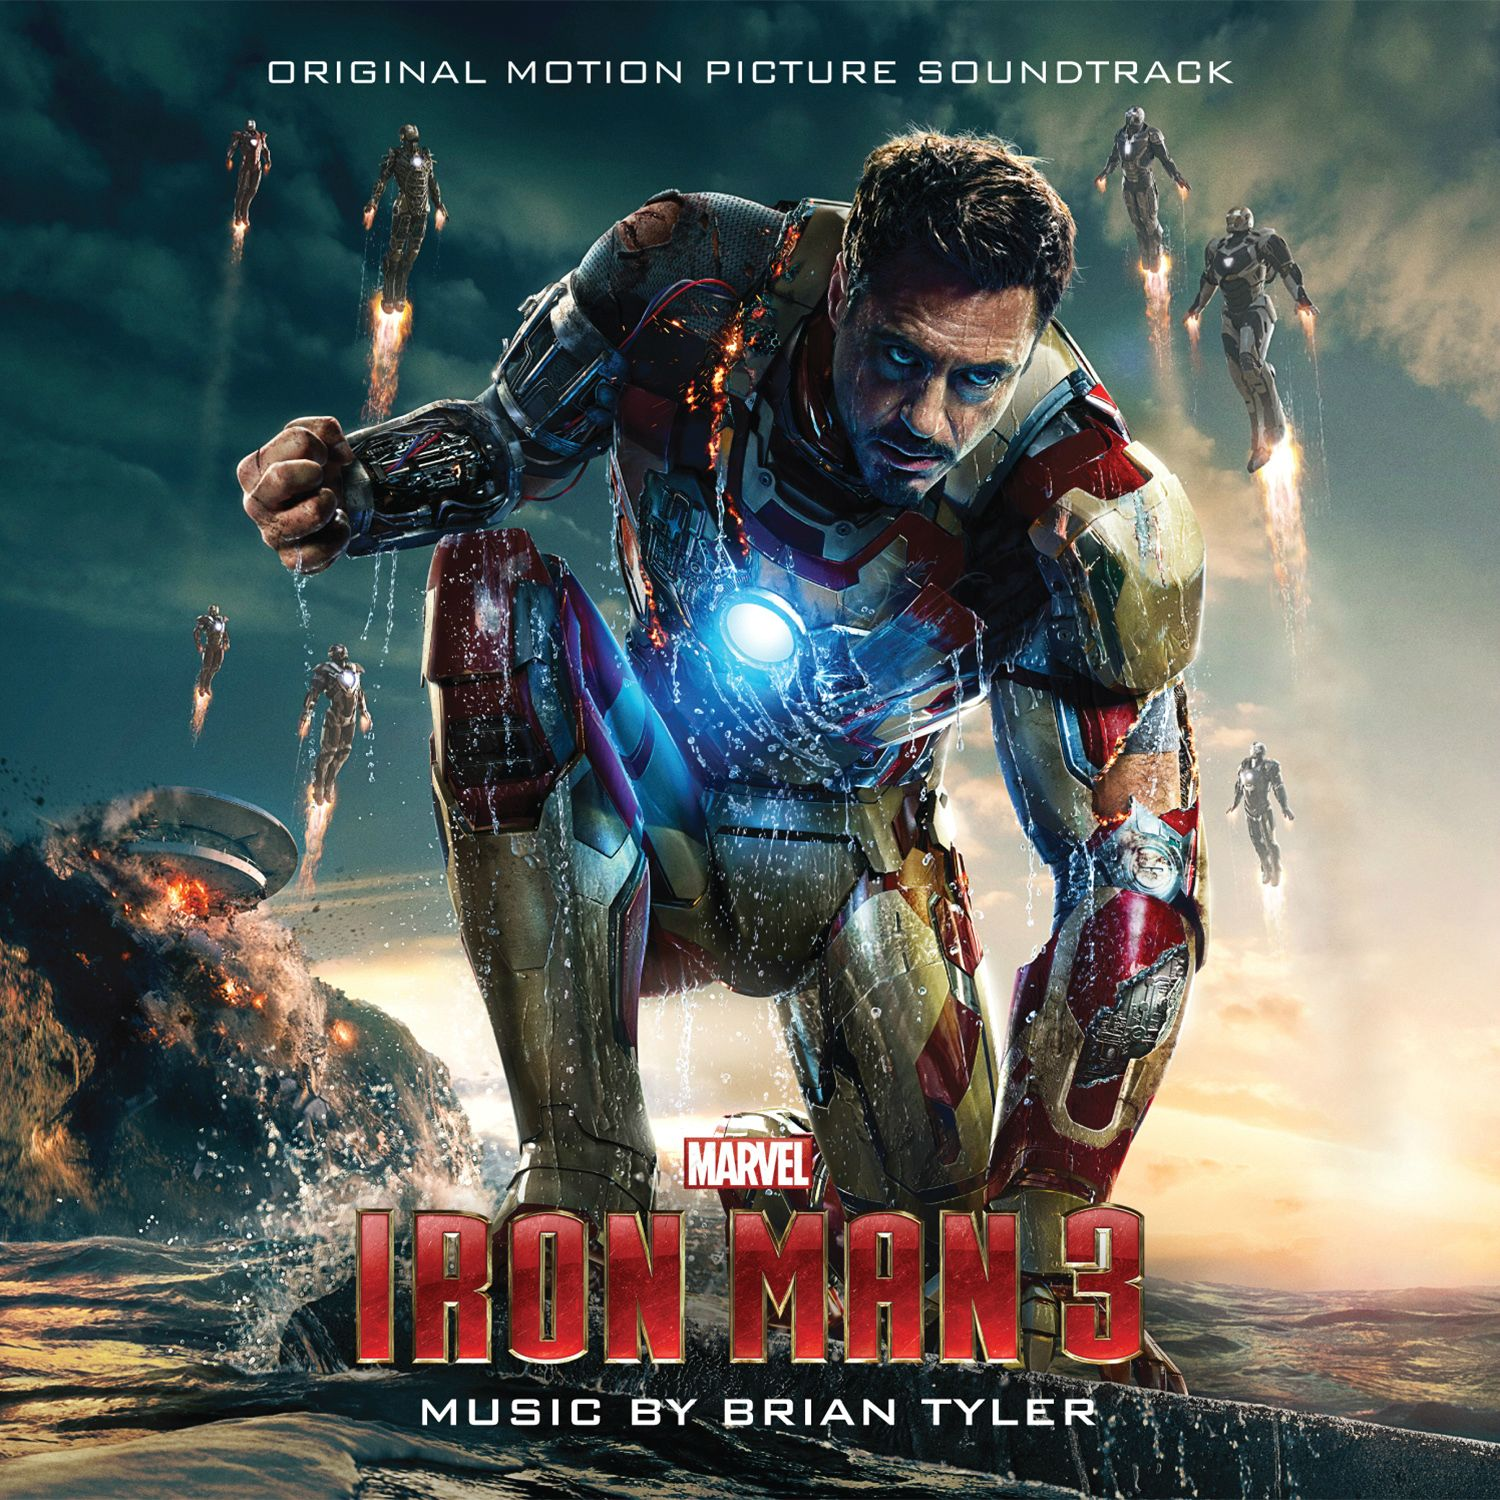 Iron Man 3 Soundtrack Details Released